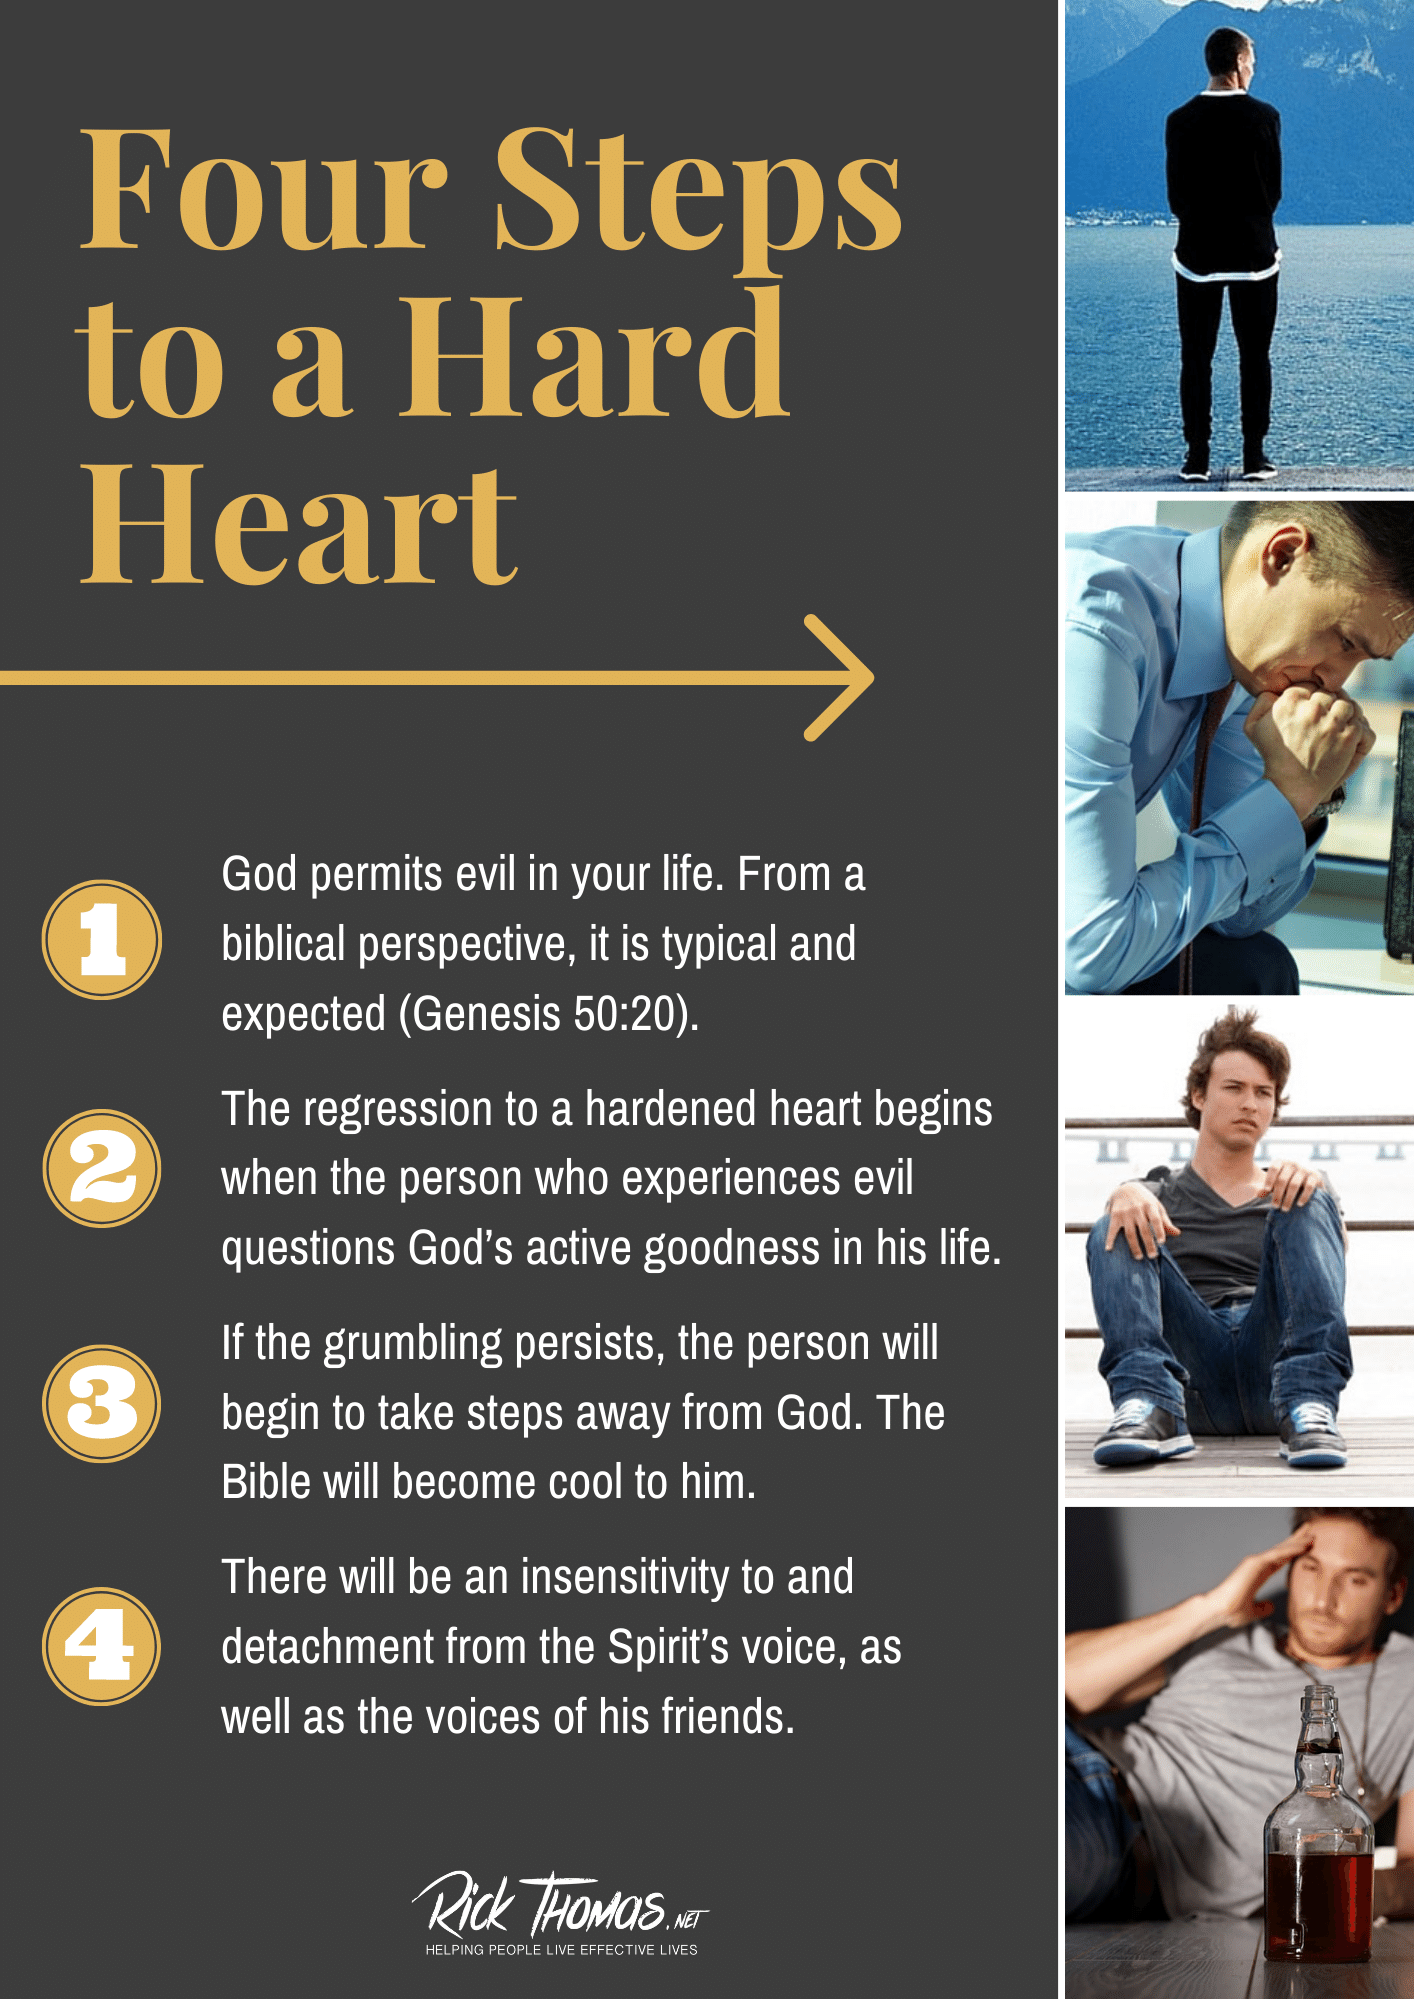 Four Steps to a Hard Heart